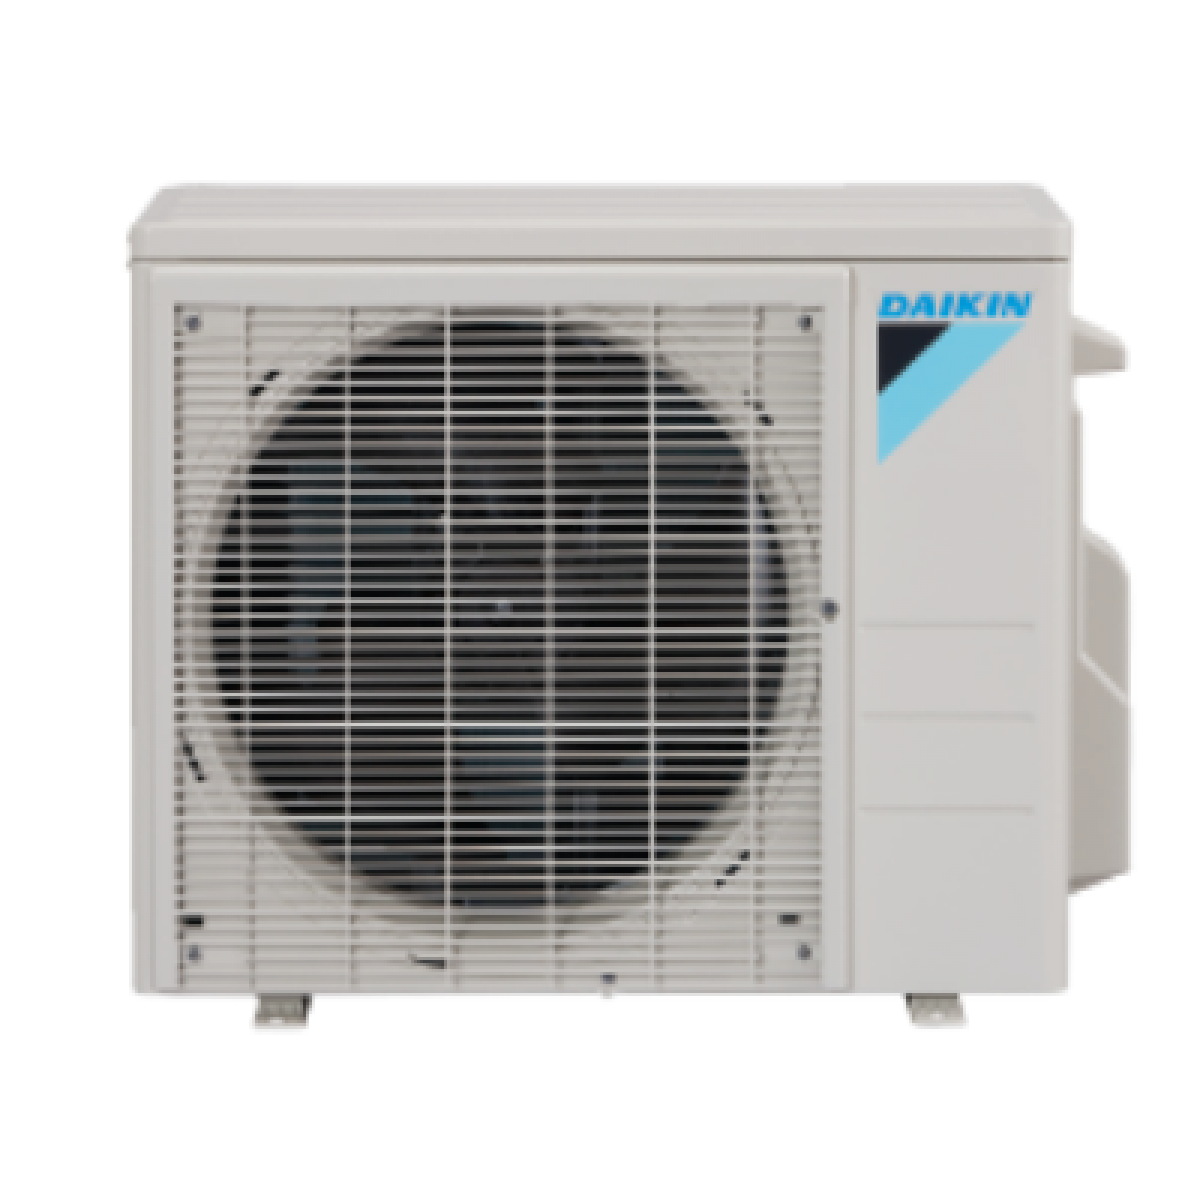 Daikin 3 Zone 24k Btu Heat Pump System Multi Zone